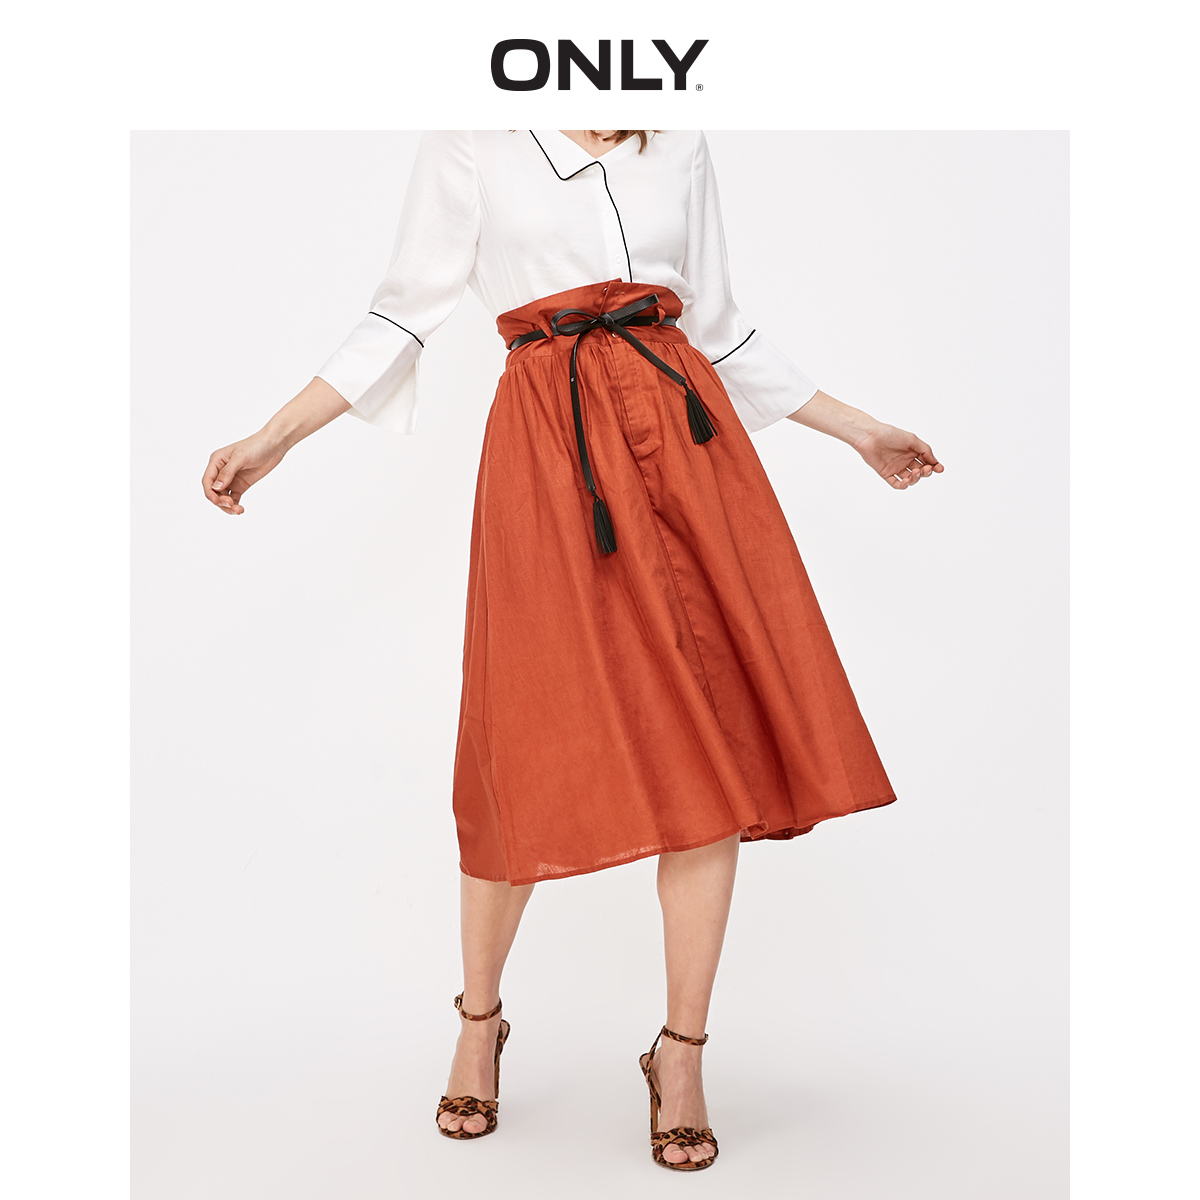 ONLY Women's Pure Color High-rise Cotton Linen A-lined Skirt | 119116537